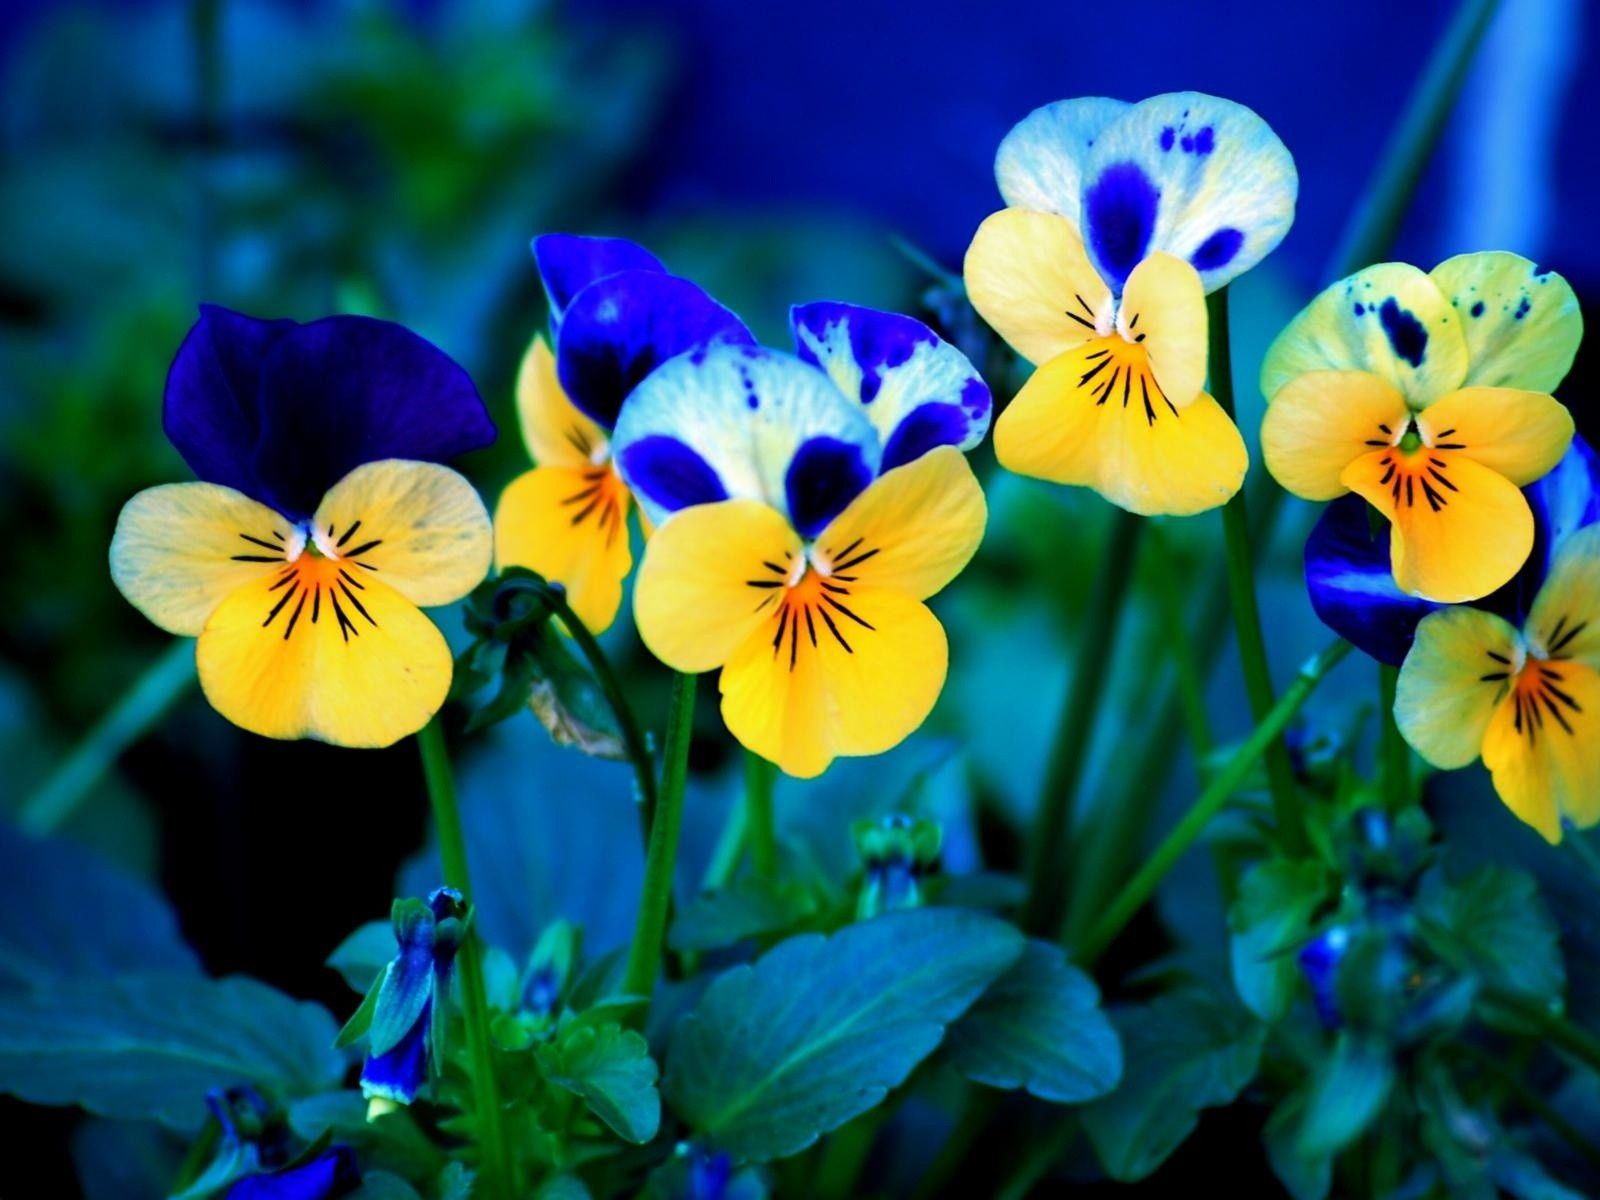 22 beautiful free spring wallpapers to bring you joy